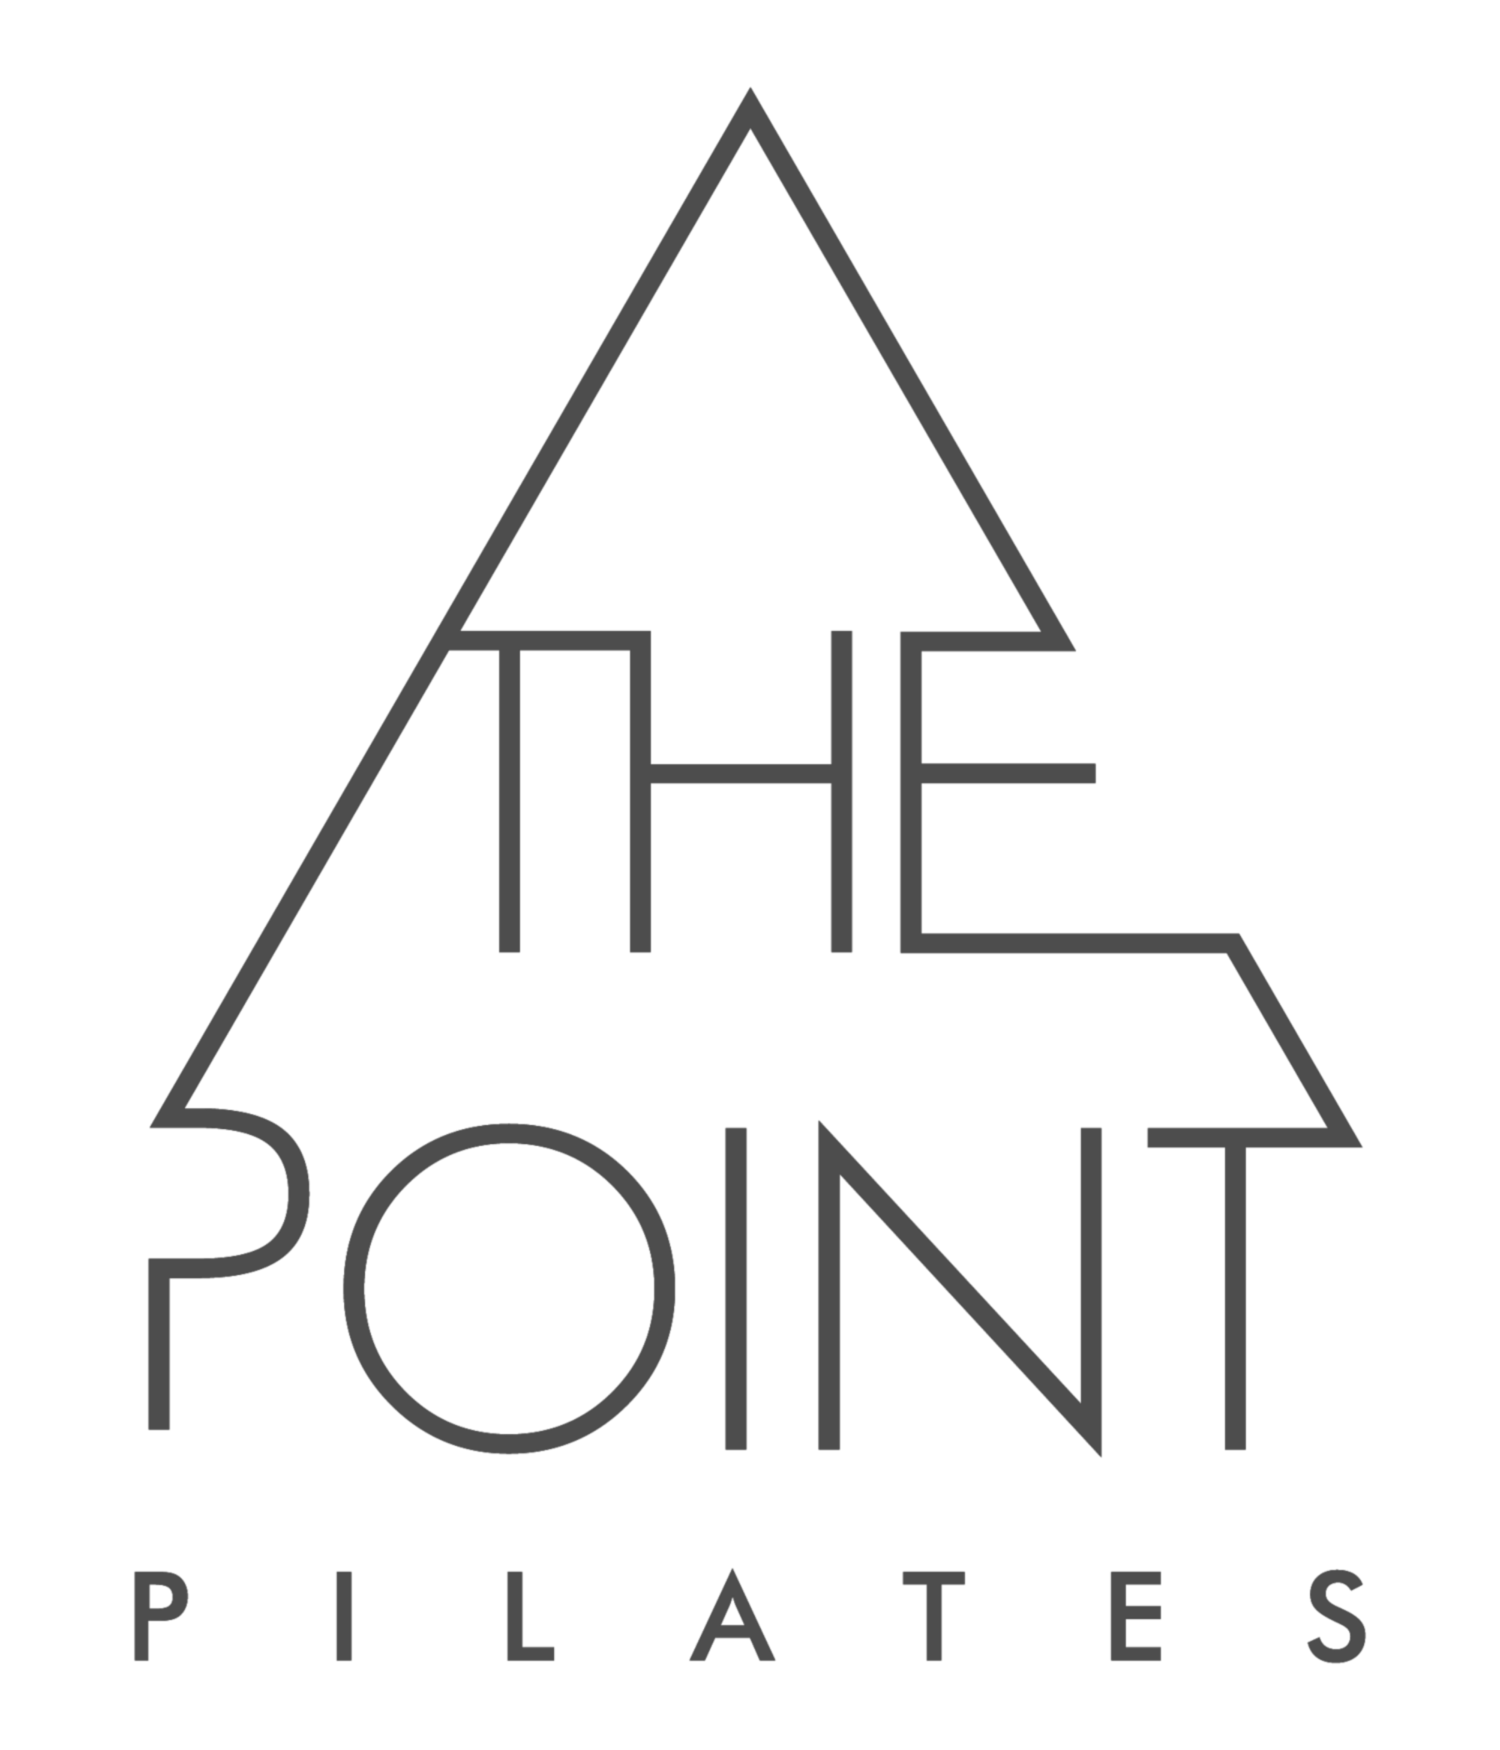 The Point Pilates